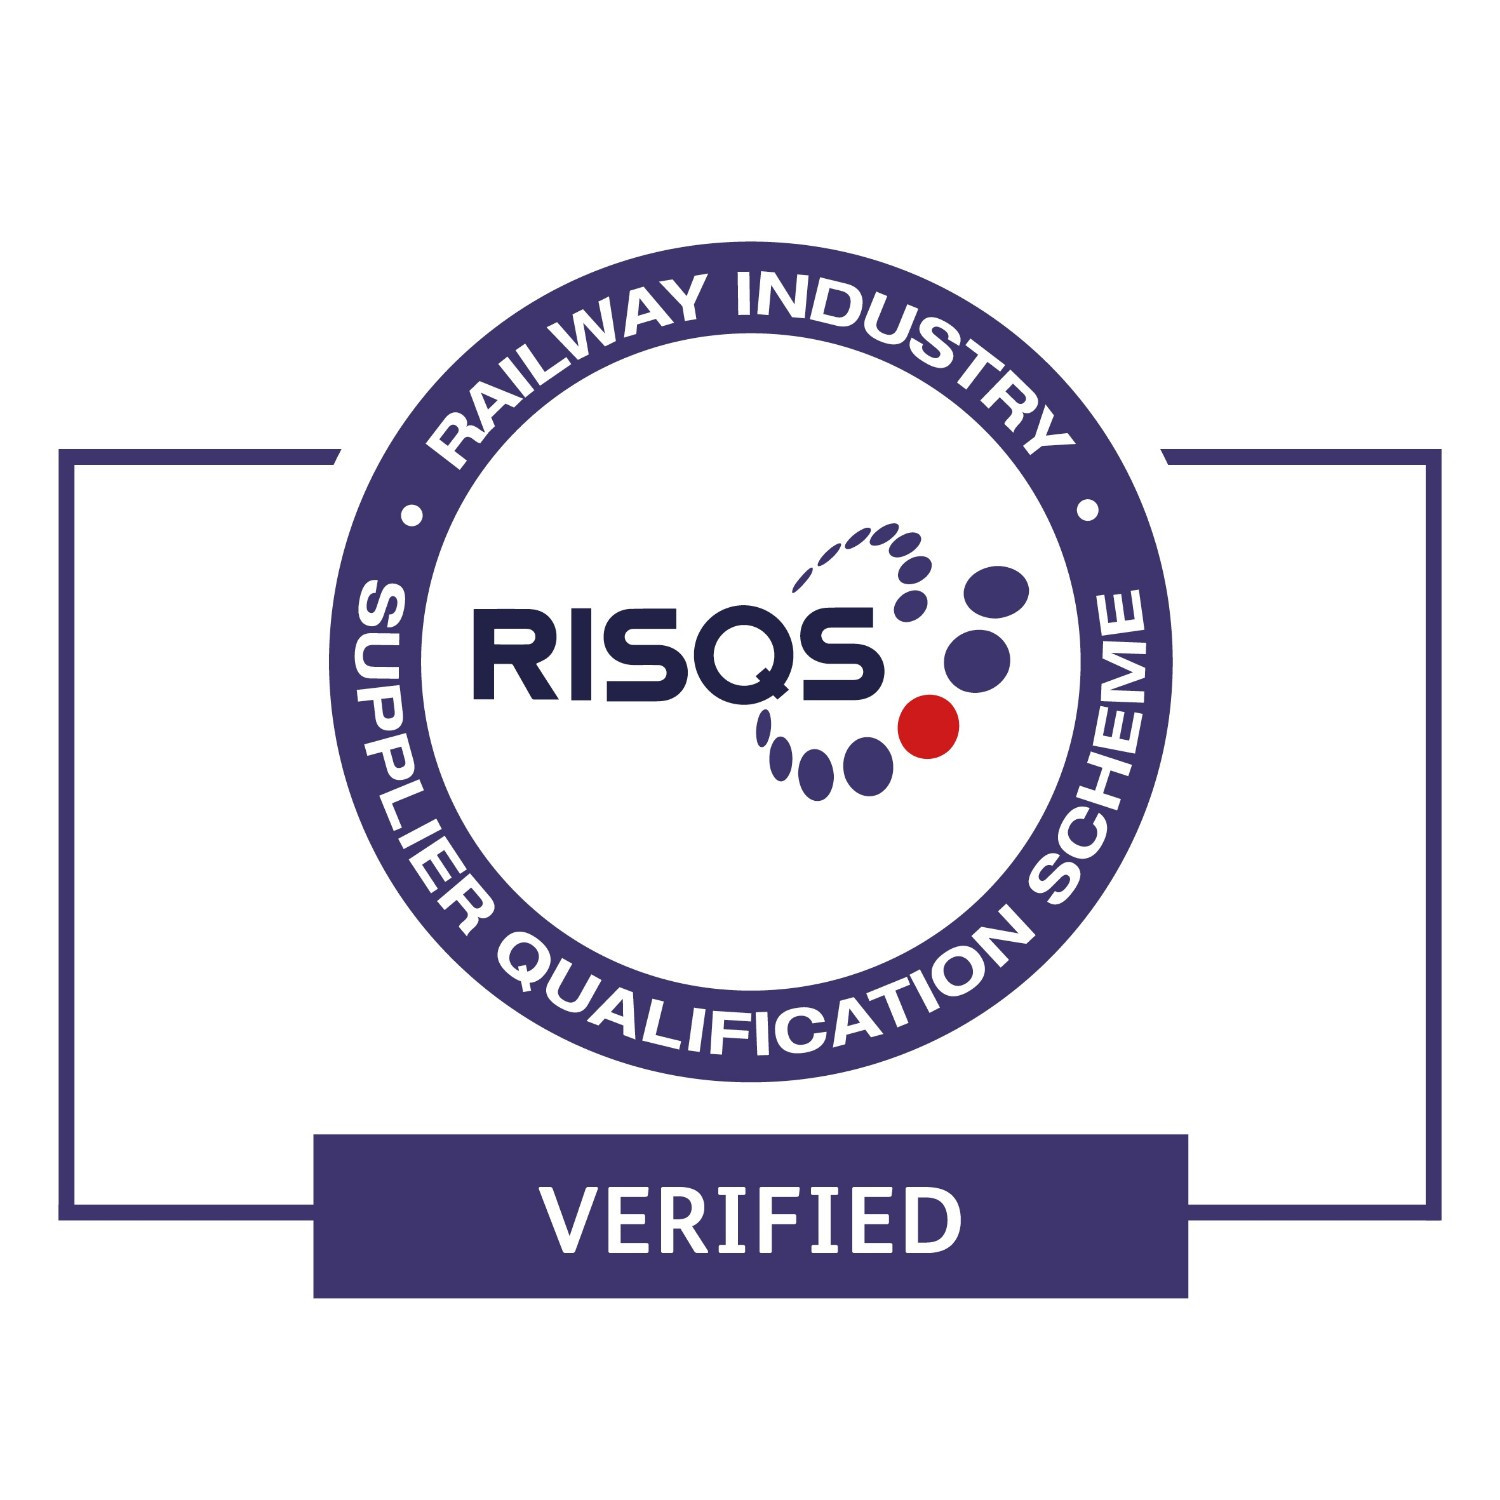 RISQS. VERIFIED STAMP